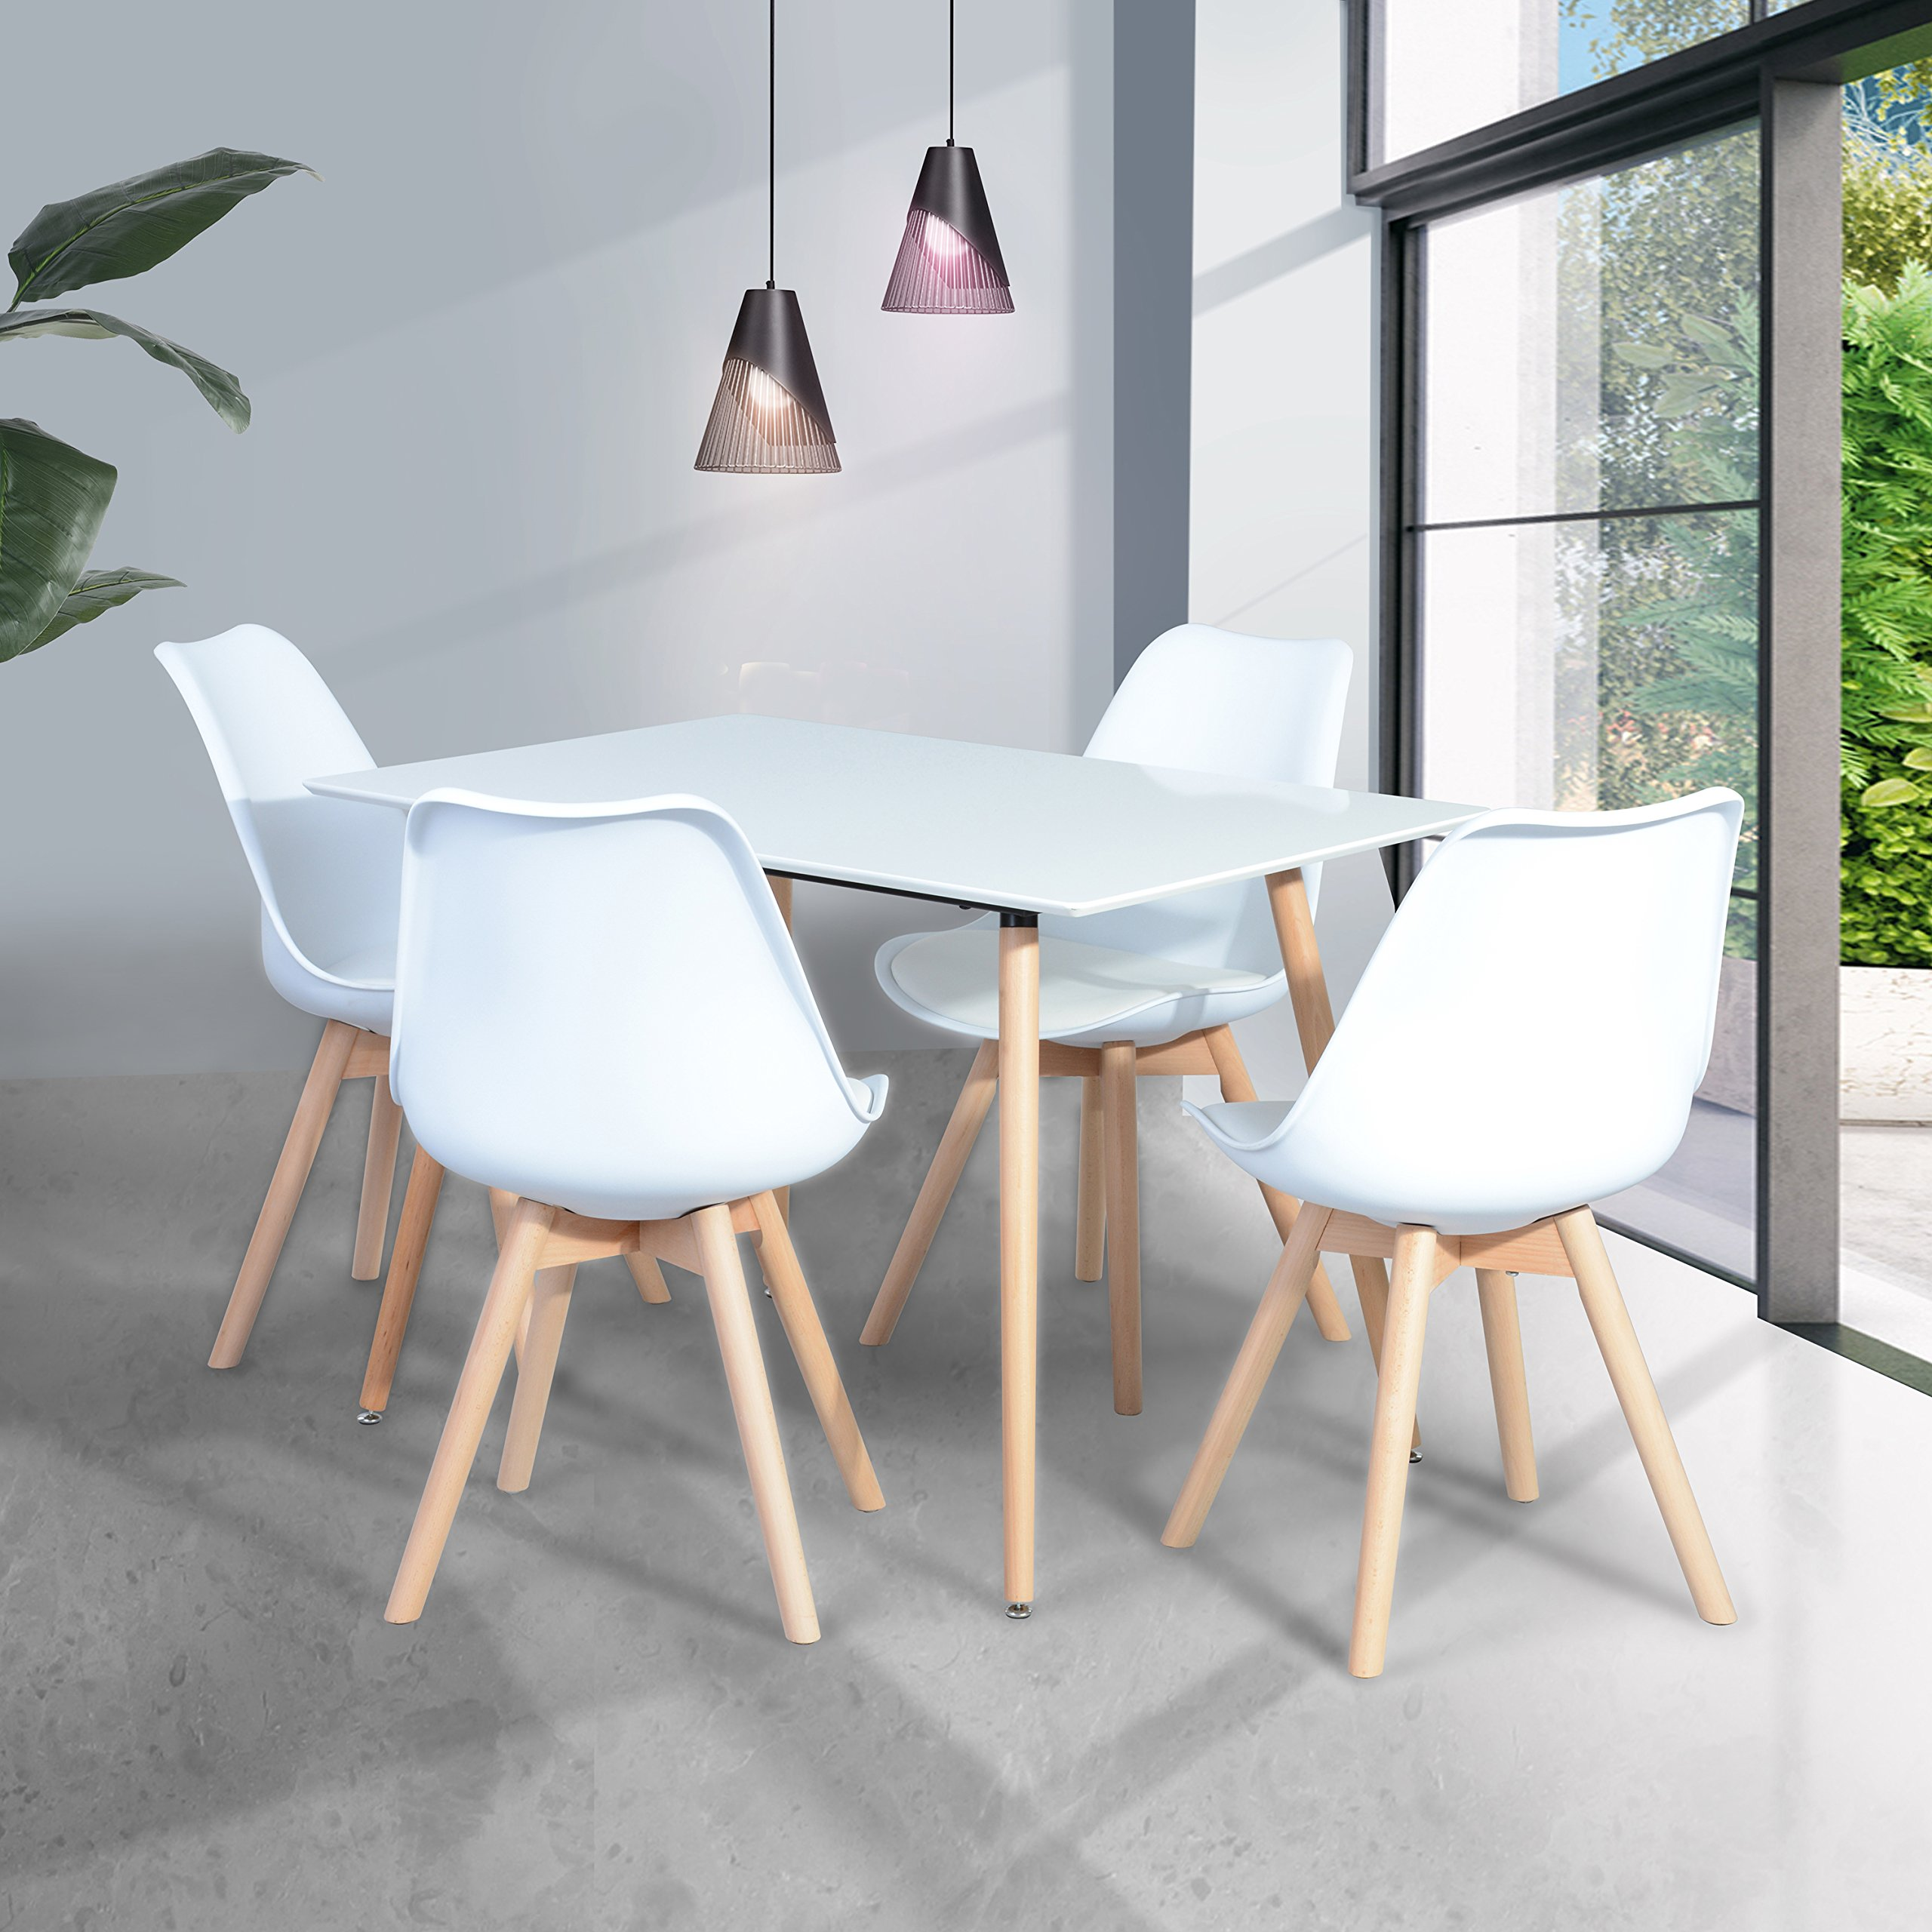 White Finish Top Steel Legs in Natural Color Rectangular Dining Table - Mid Century Style (Table only)